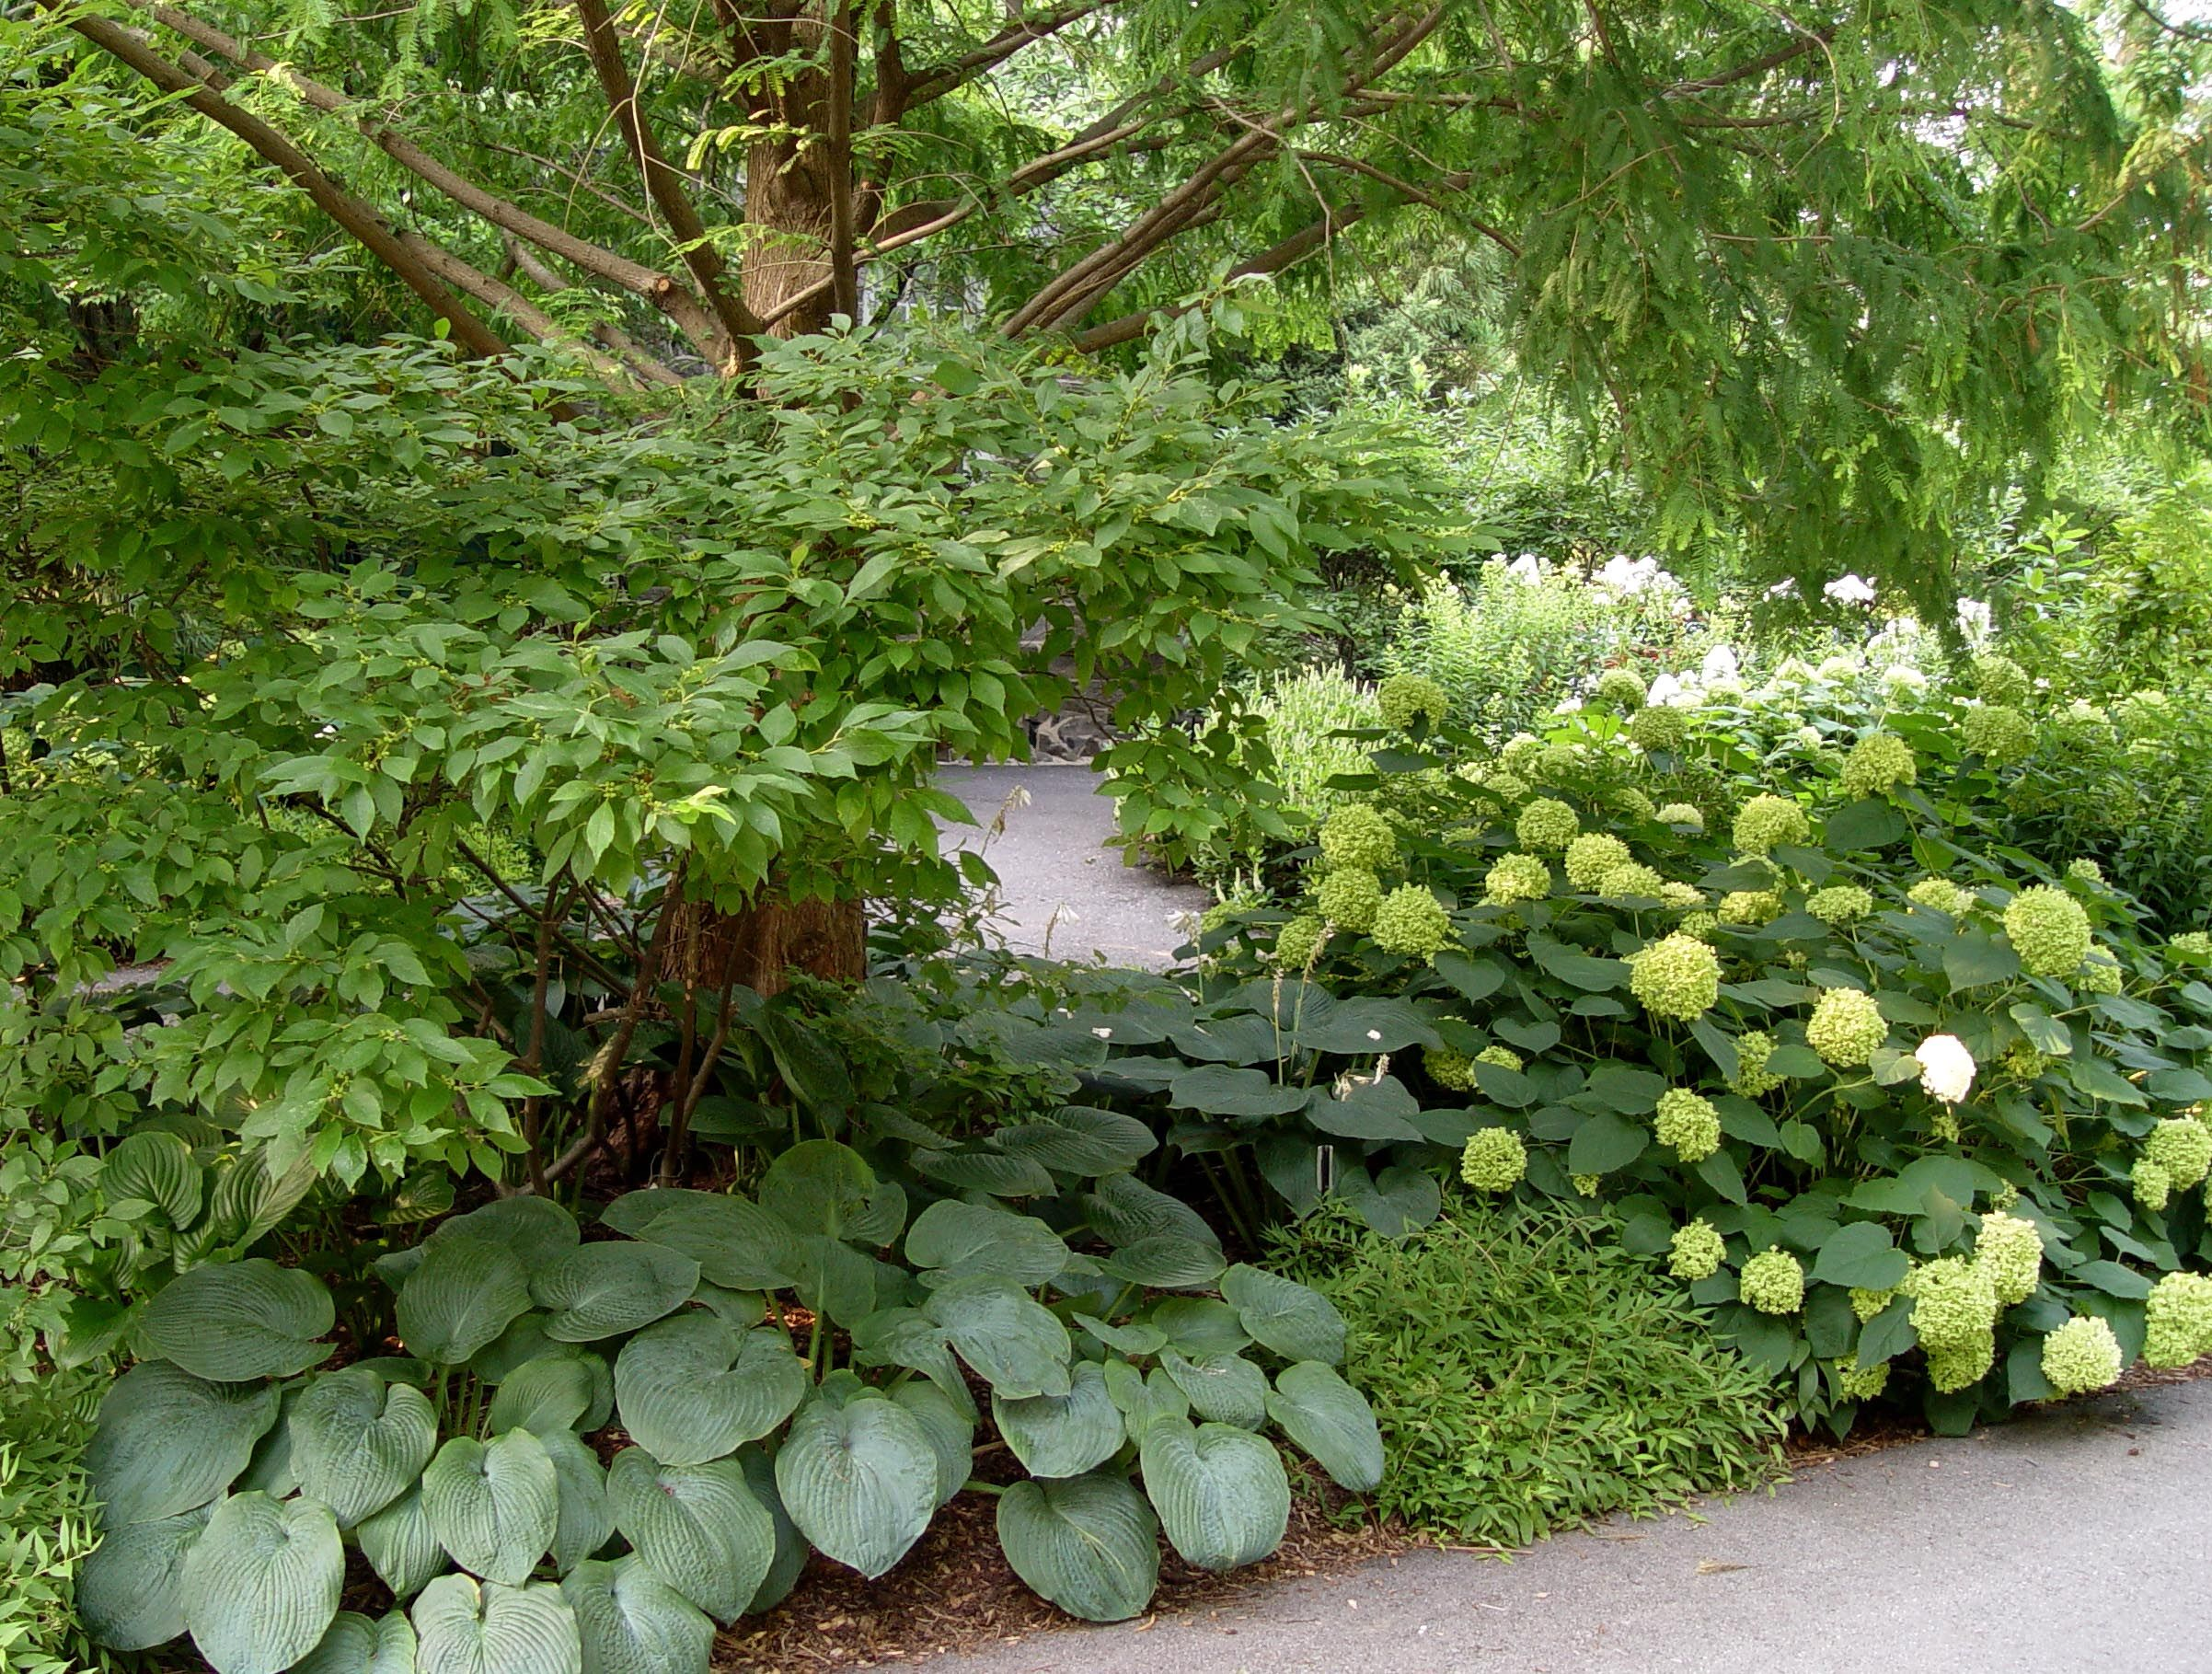 Landscaping ideas for shady patio with mississippi plants for Low growing landscape plants